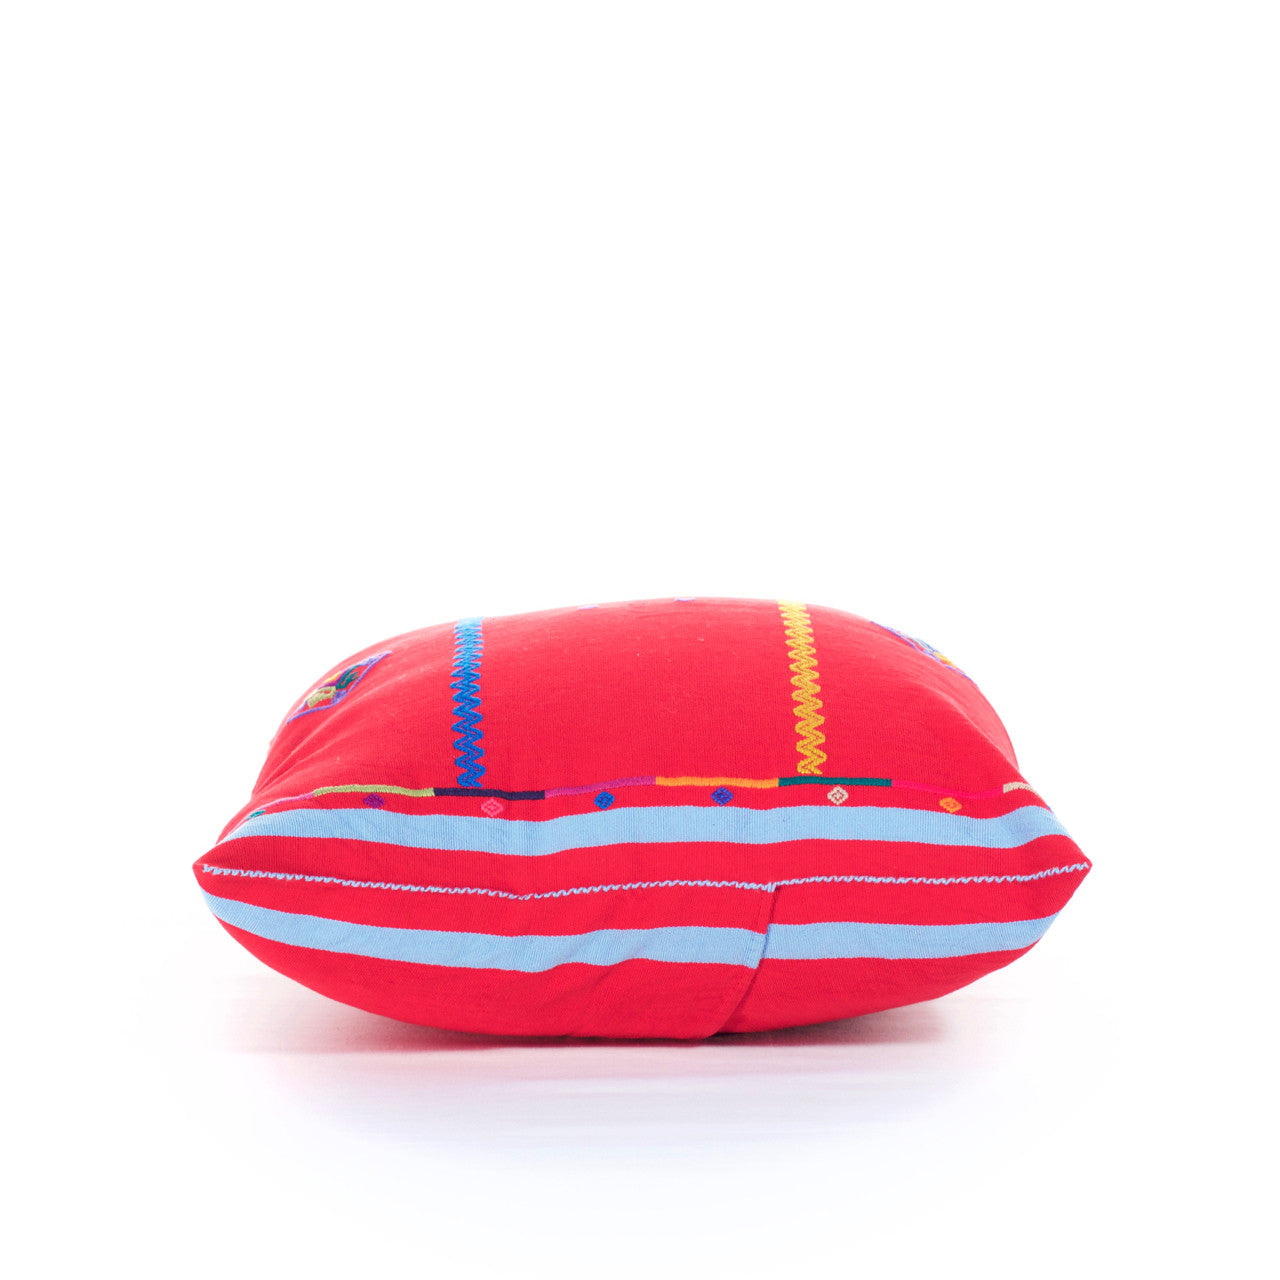 Sapo Cushion - Cielo Collective - Red with Purple & Pale Blue Stripe - 5